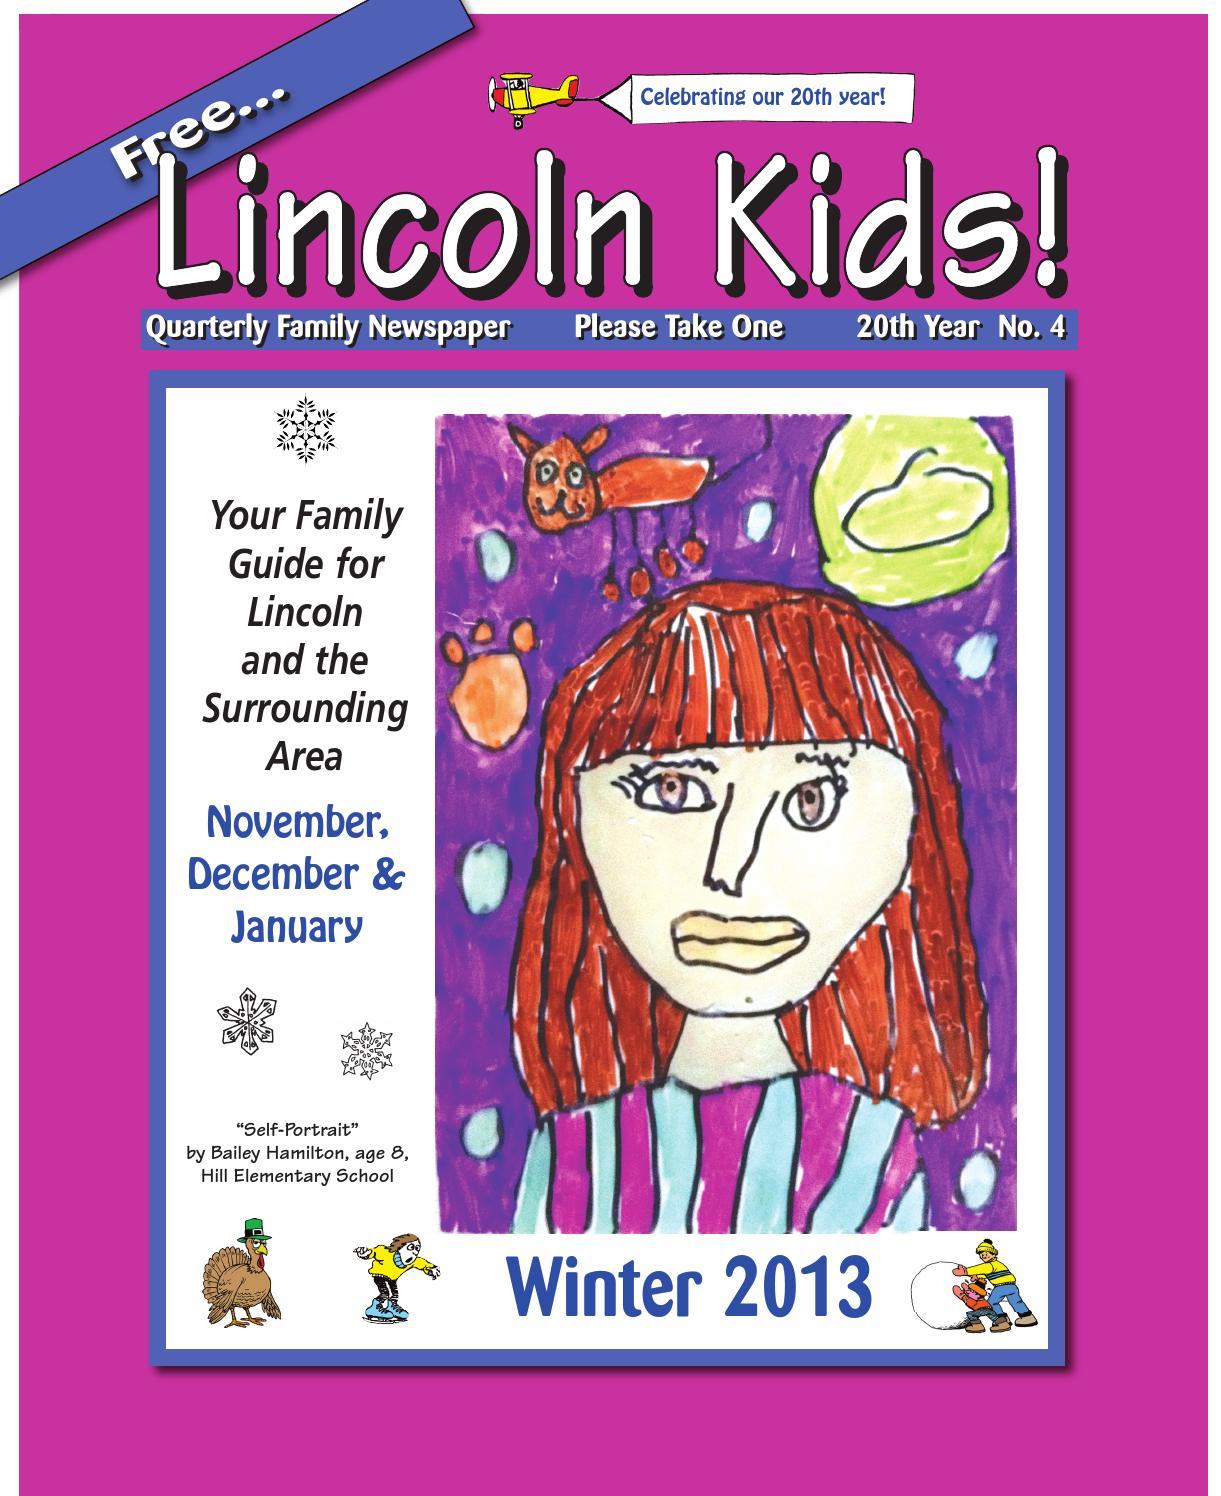 Lincolnkidswinter2013 By Lincoln Kids Newspaper Issuu Lego Birthday Party Fox Trot Feet Dance Steps Diagram Free Download